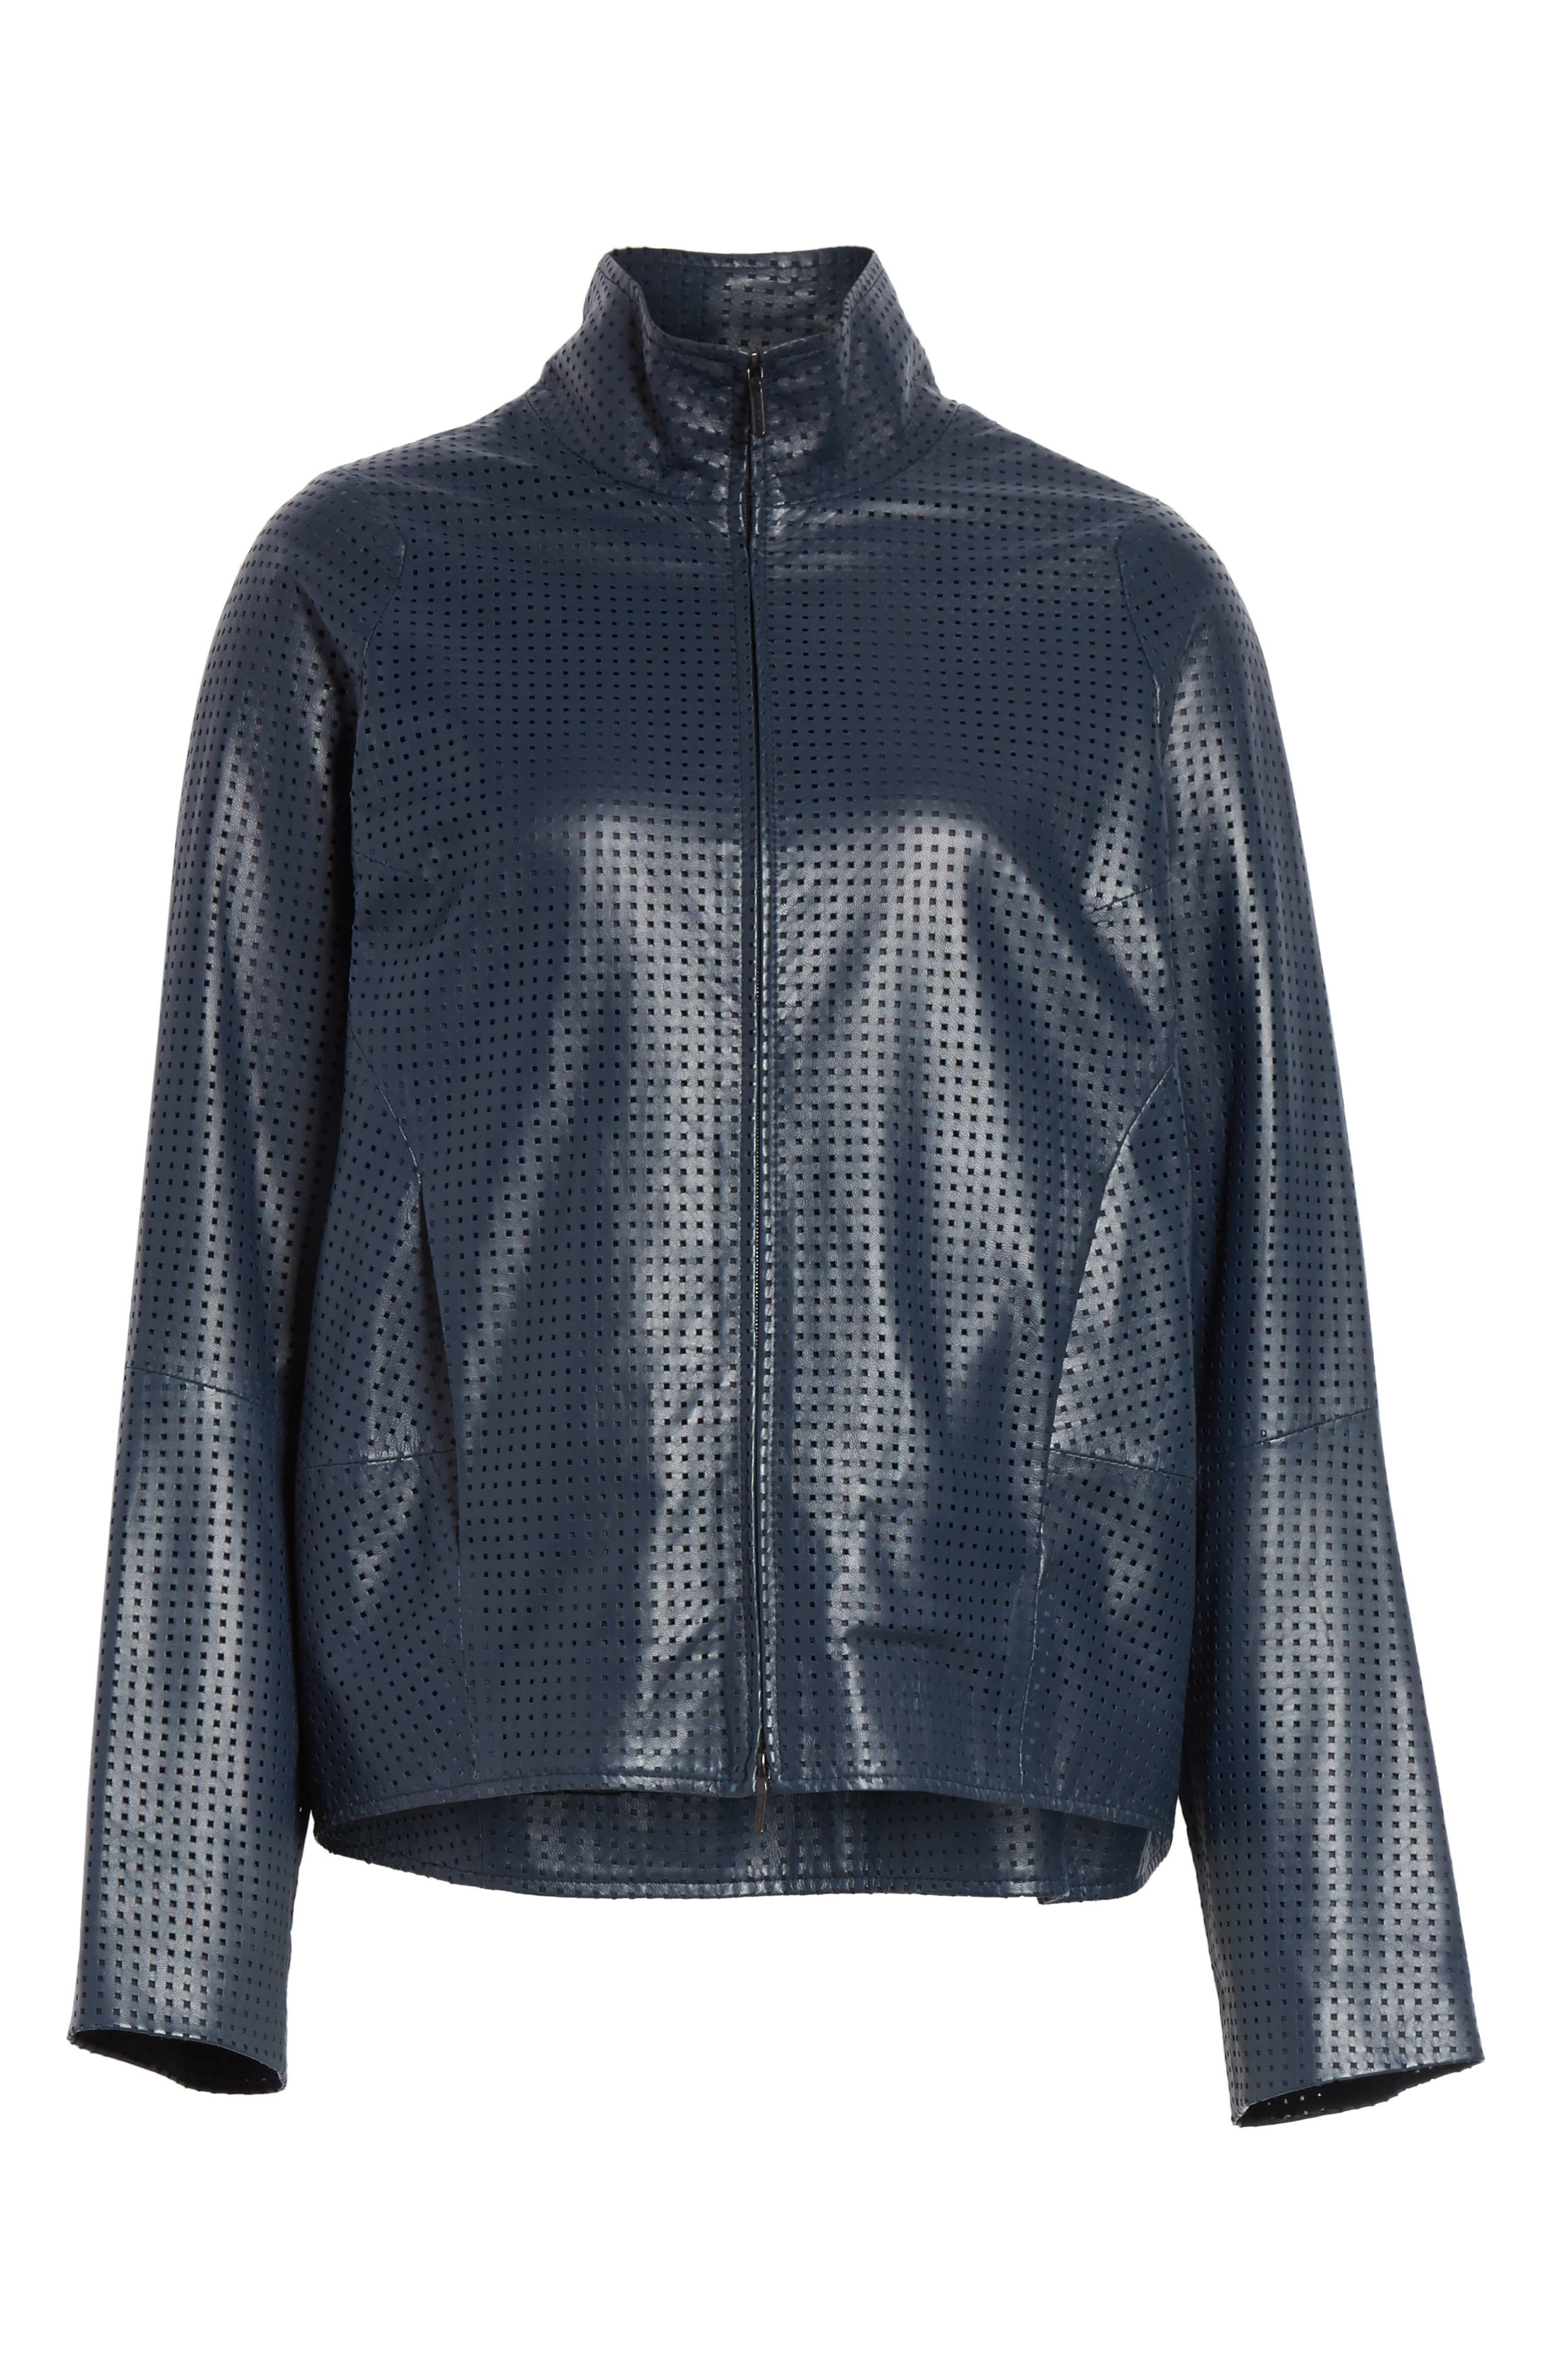 Perforated Nappa Leather Jacket,                             Alternate thumbnail 7, color,                             Ink Jet